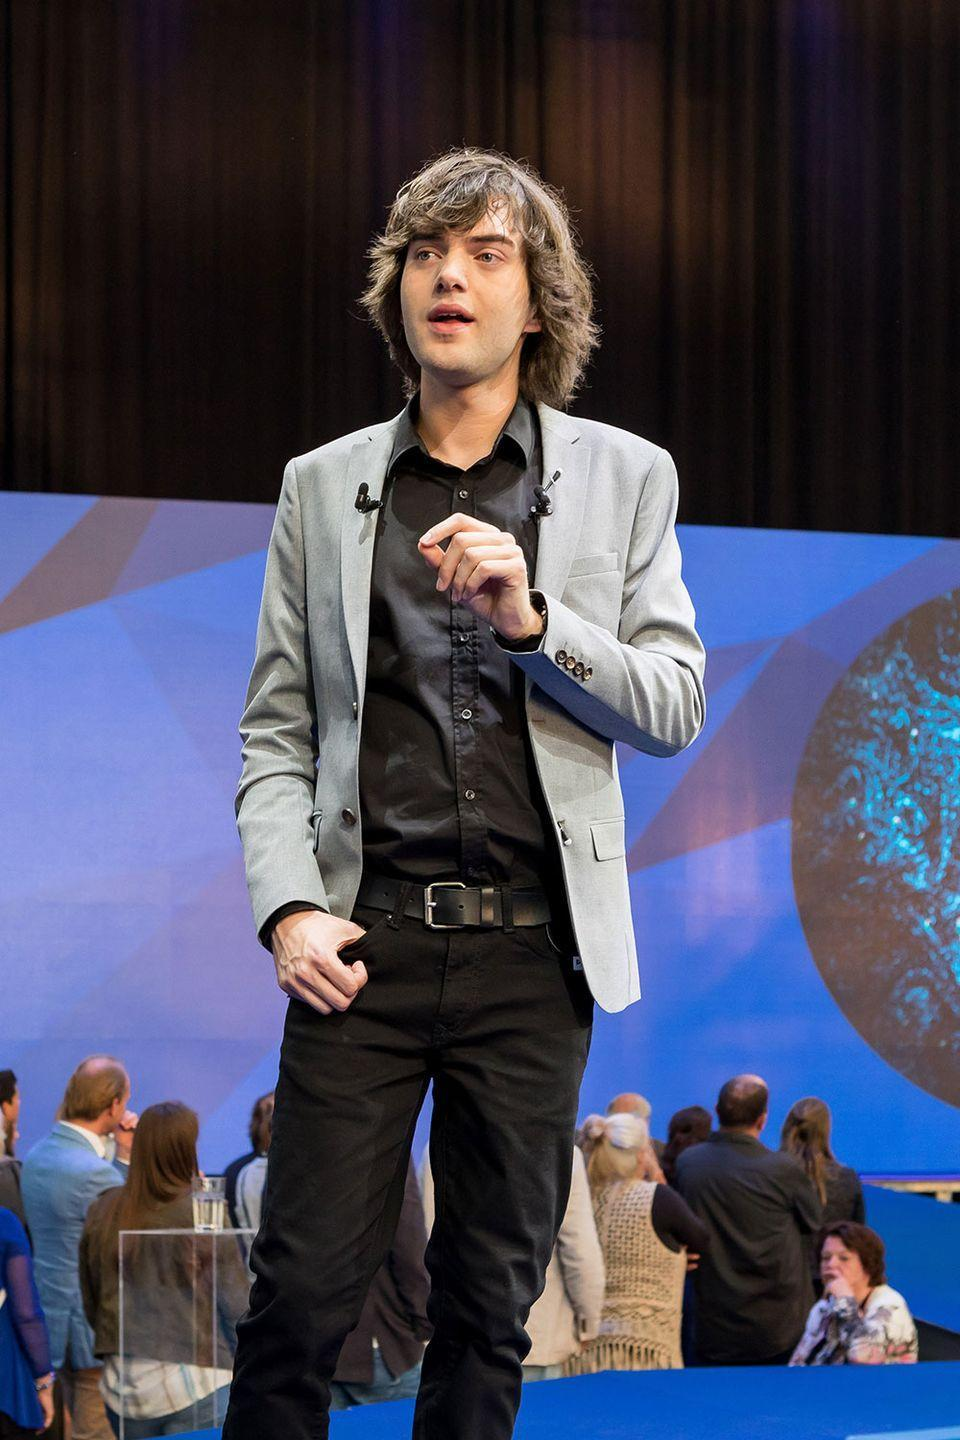 "<p>At 16, during a fishing trip in Greece, Slat discovered massive amounts of plastic in the water. Two years later, the dutch inventor launched his non-profit, <a href=""http://www.boyanslat.com/"" rel=""nofollow noopener"" target=""_blank"" data-ylk=""slk:Ocean Cleanup"" class=""link rapid-noclick-resp"">Ocean Cleanup</a>, to research using circulating currents to address the pollution issue. The group has raised over $31.5 million in donations to help achieve Boyan's goal.</p>"